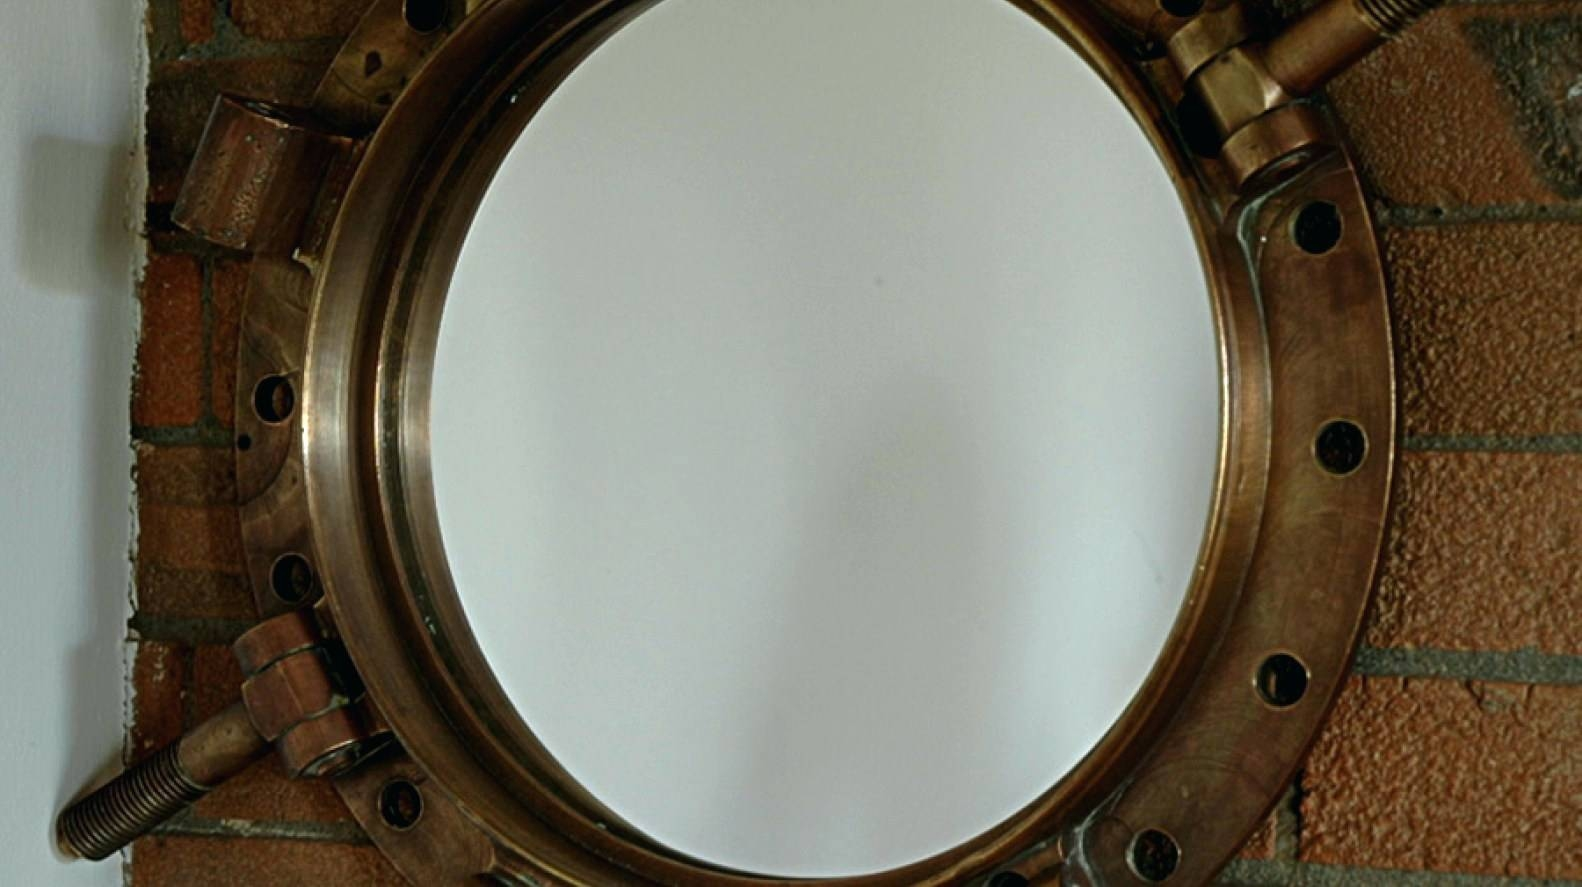 Wall Mirrors ~ Large Round Convex Wall Mirror Round Decorative With Large Round Convex Mirrors (View 15 of 15)